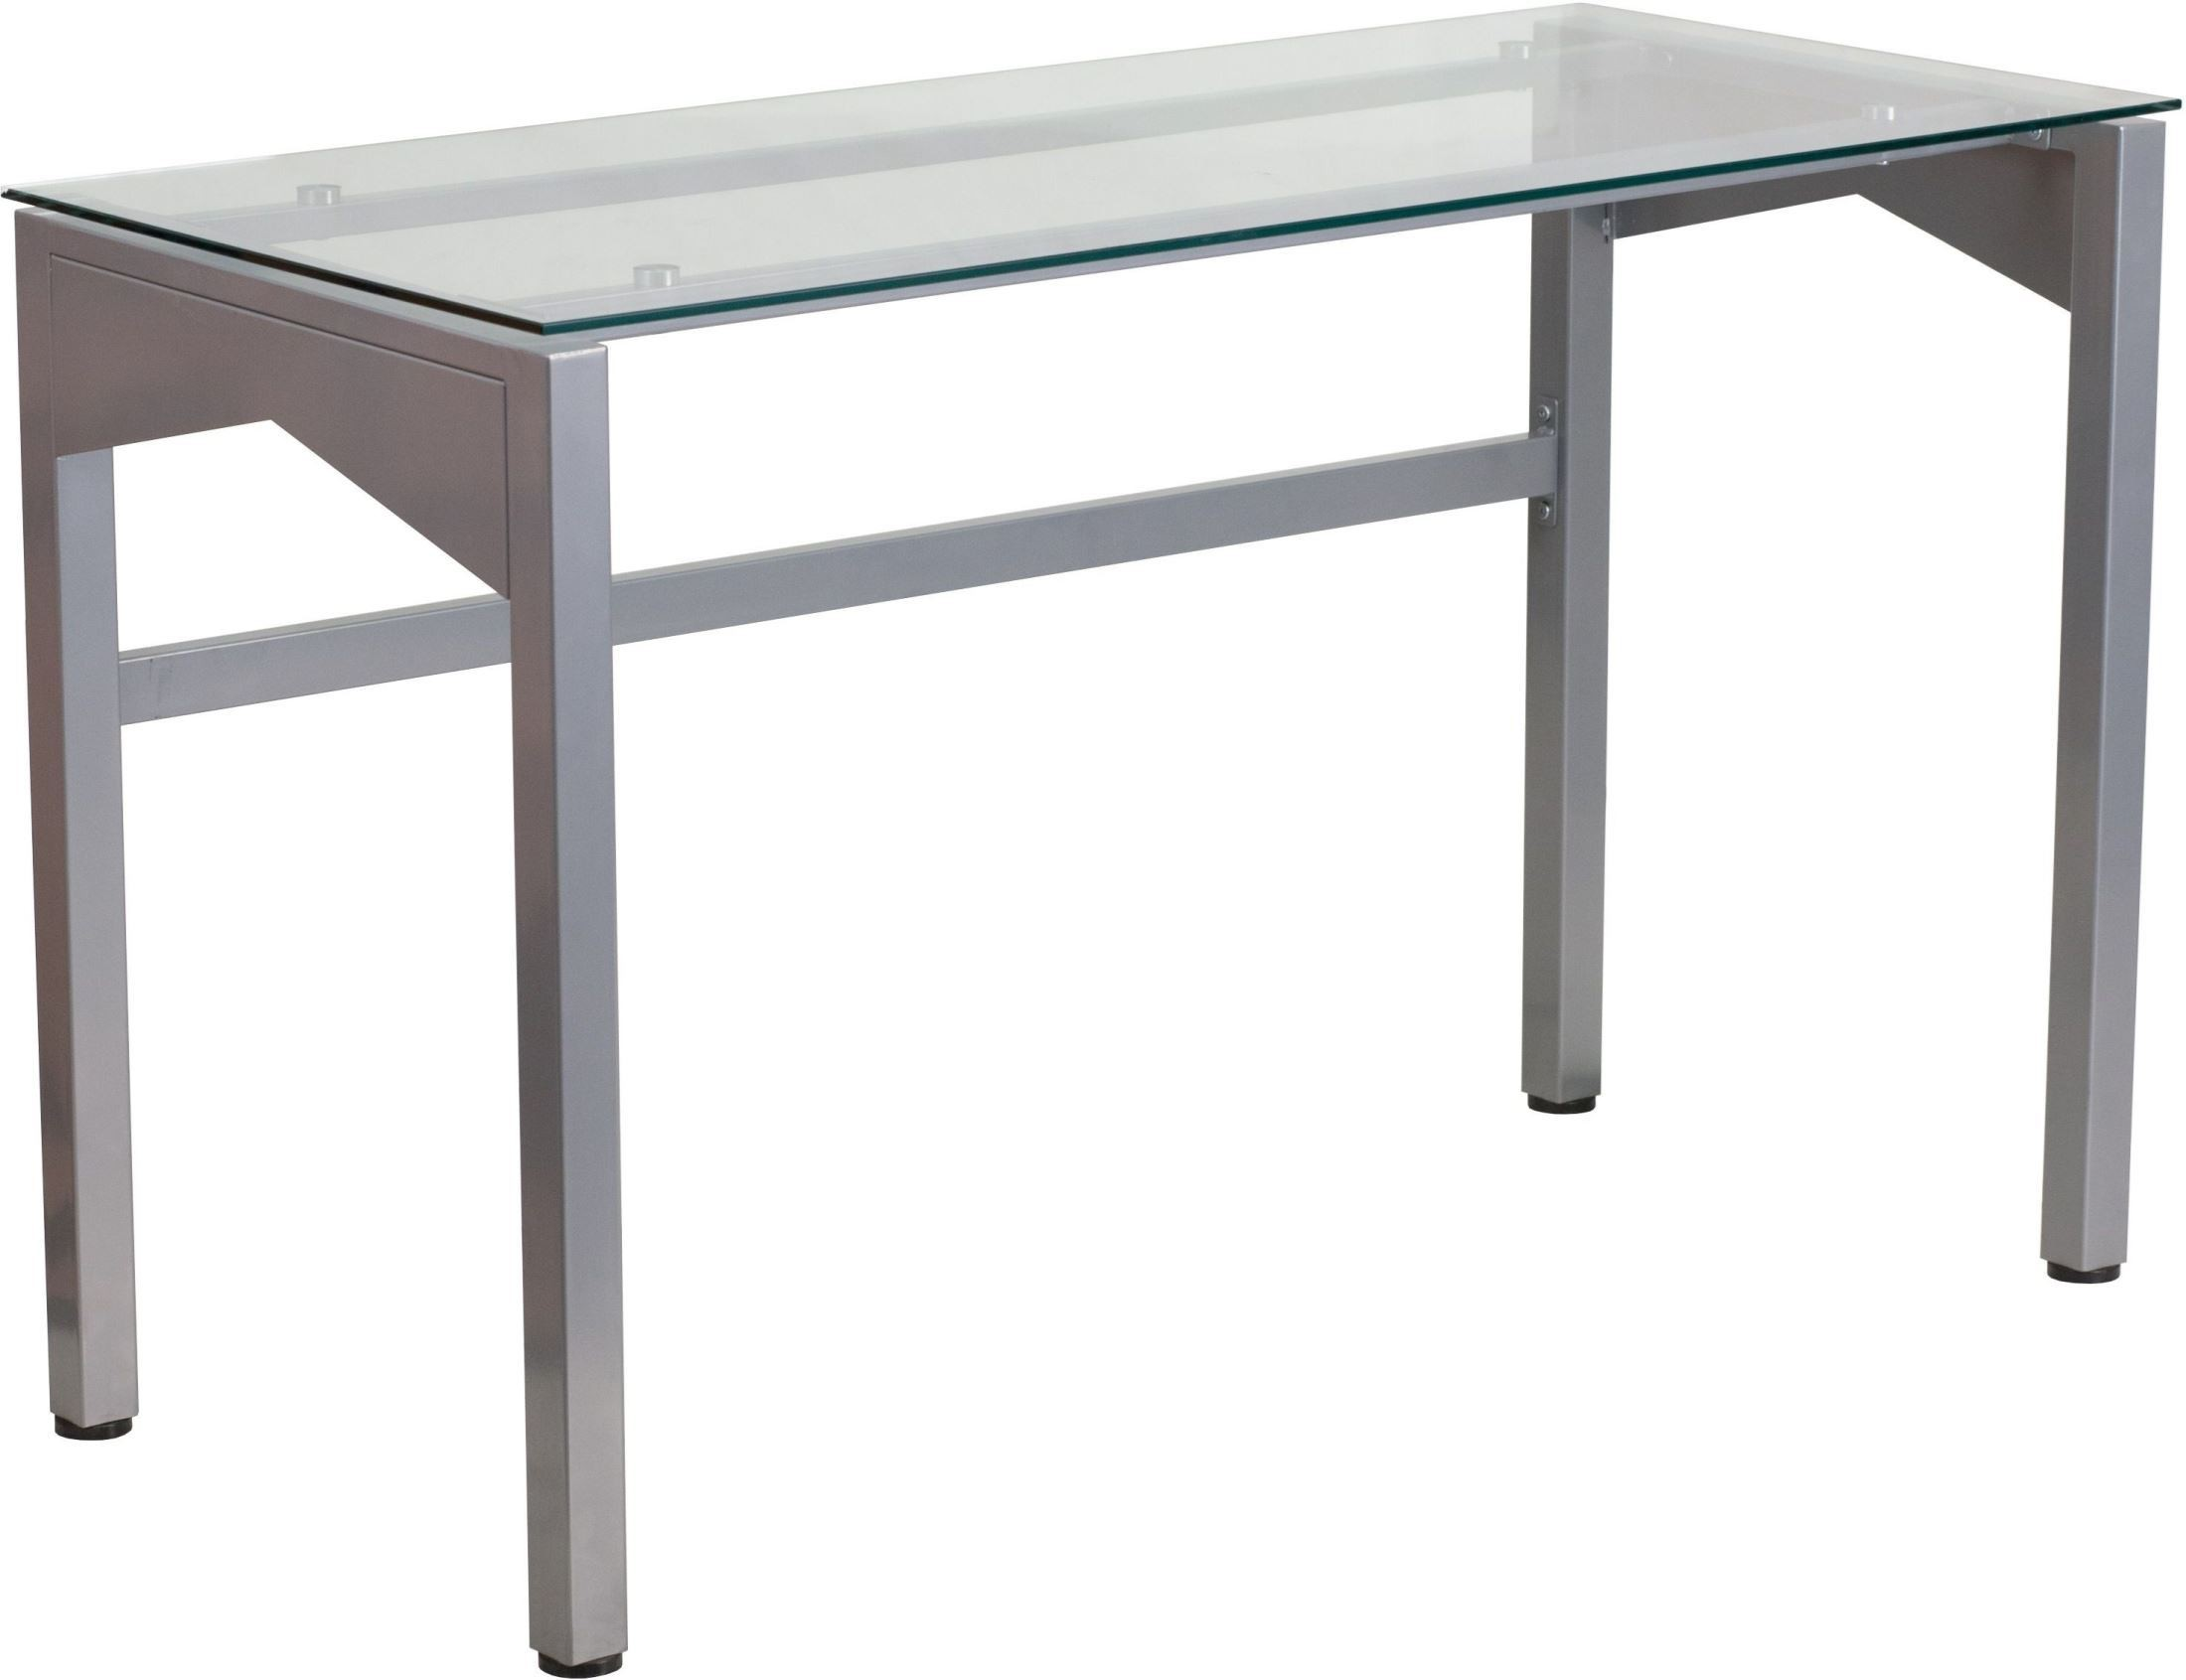 Contemporary Desk With Clear Tempered Glass Top From Renegade Coleman Furniture